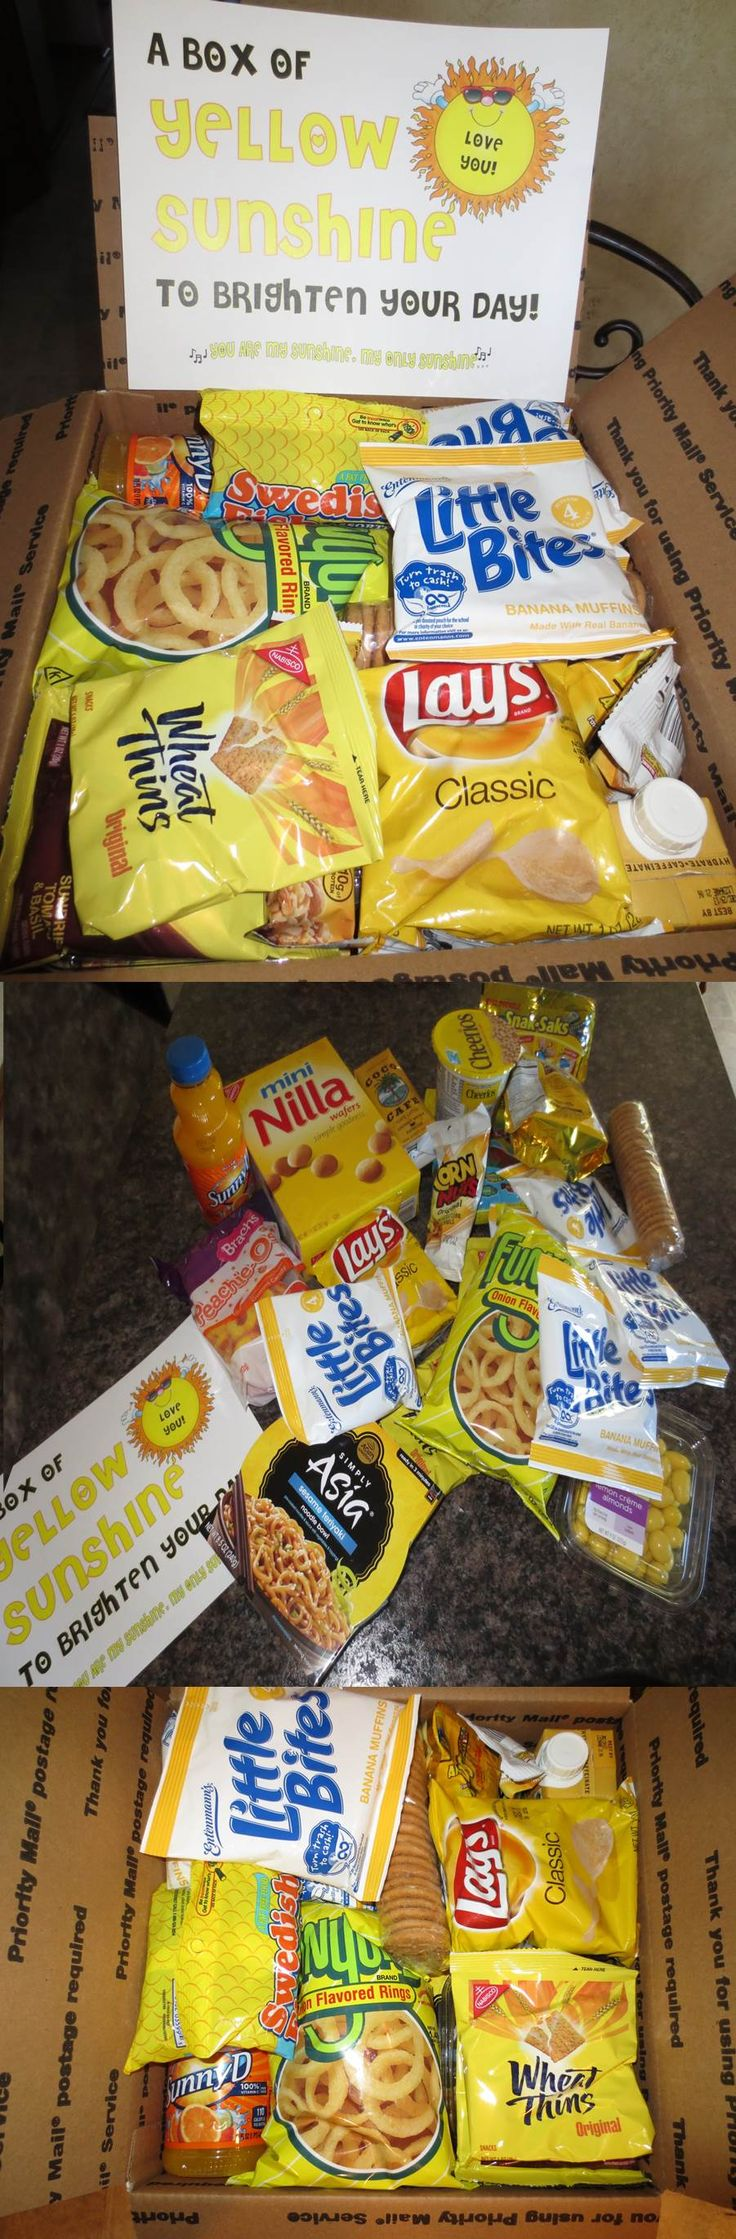 COLLEGE GIFT. My first 'themed' care package being sent off to college. A BOX OF YELLOW SUNSHINE! Everything in the box is yellow, what a way to brighten the day!